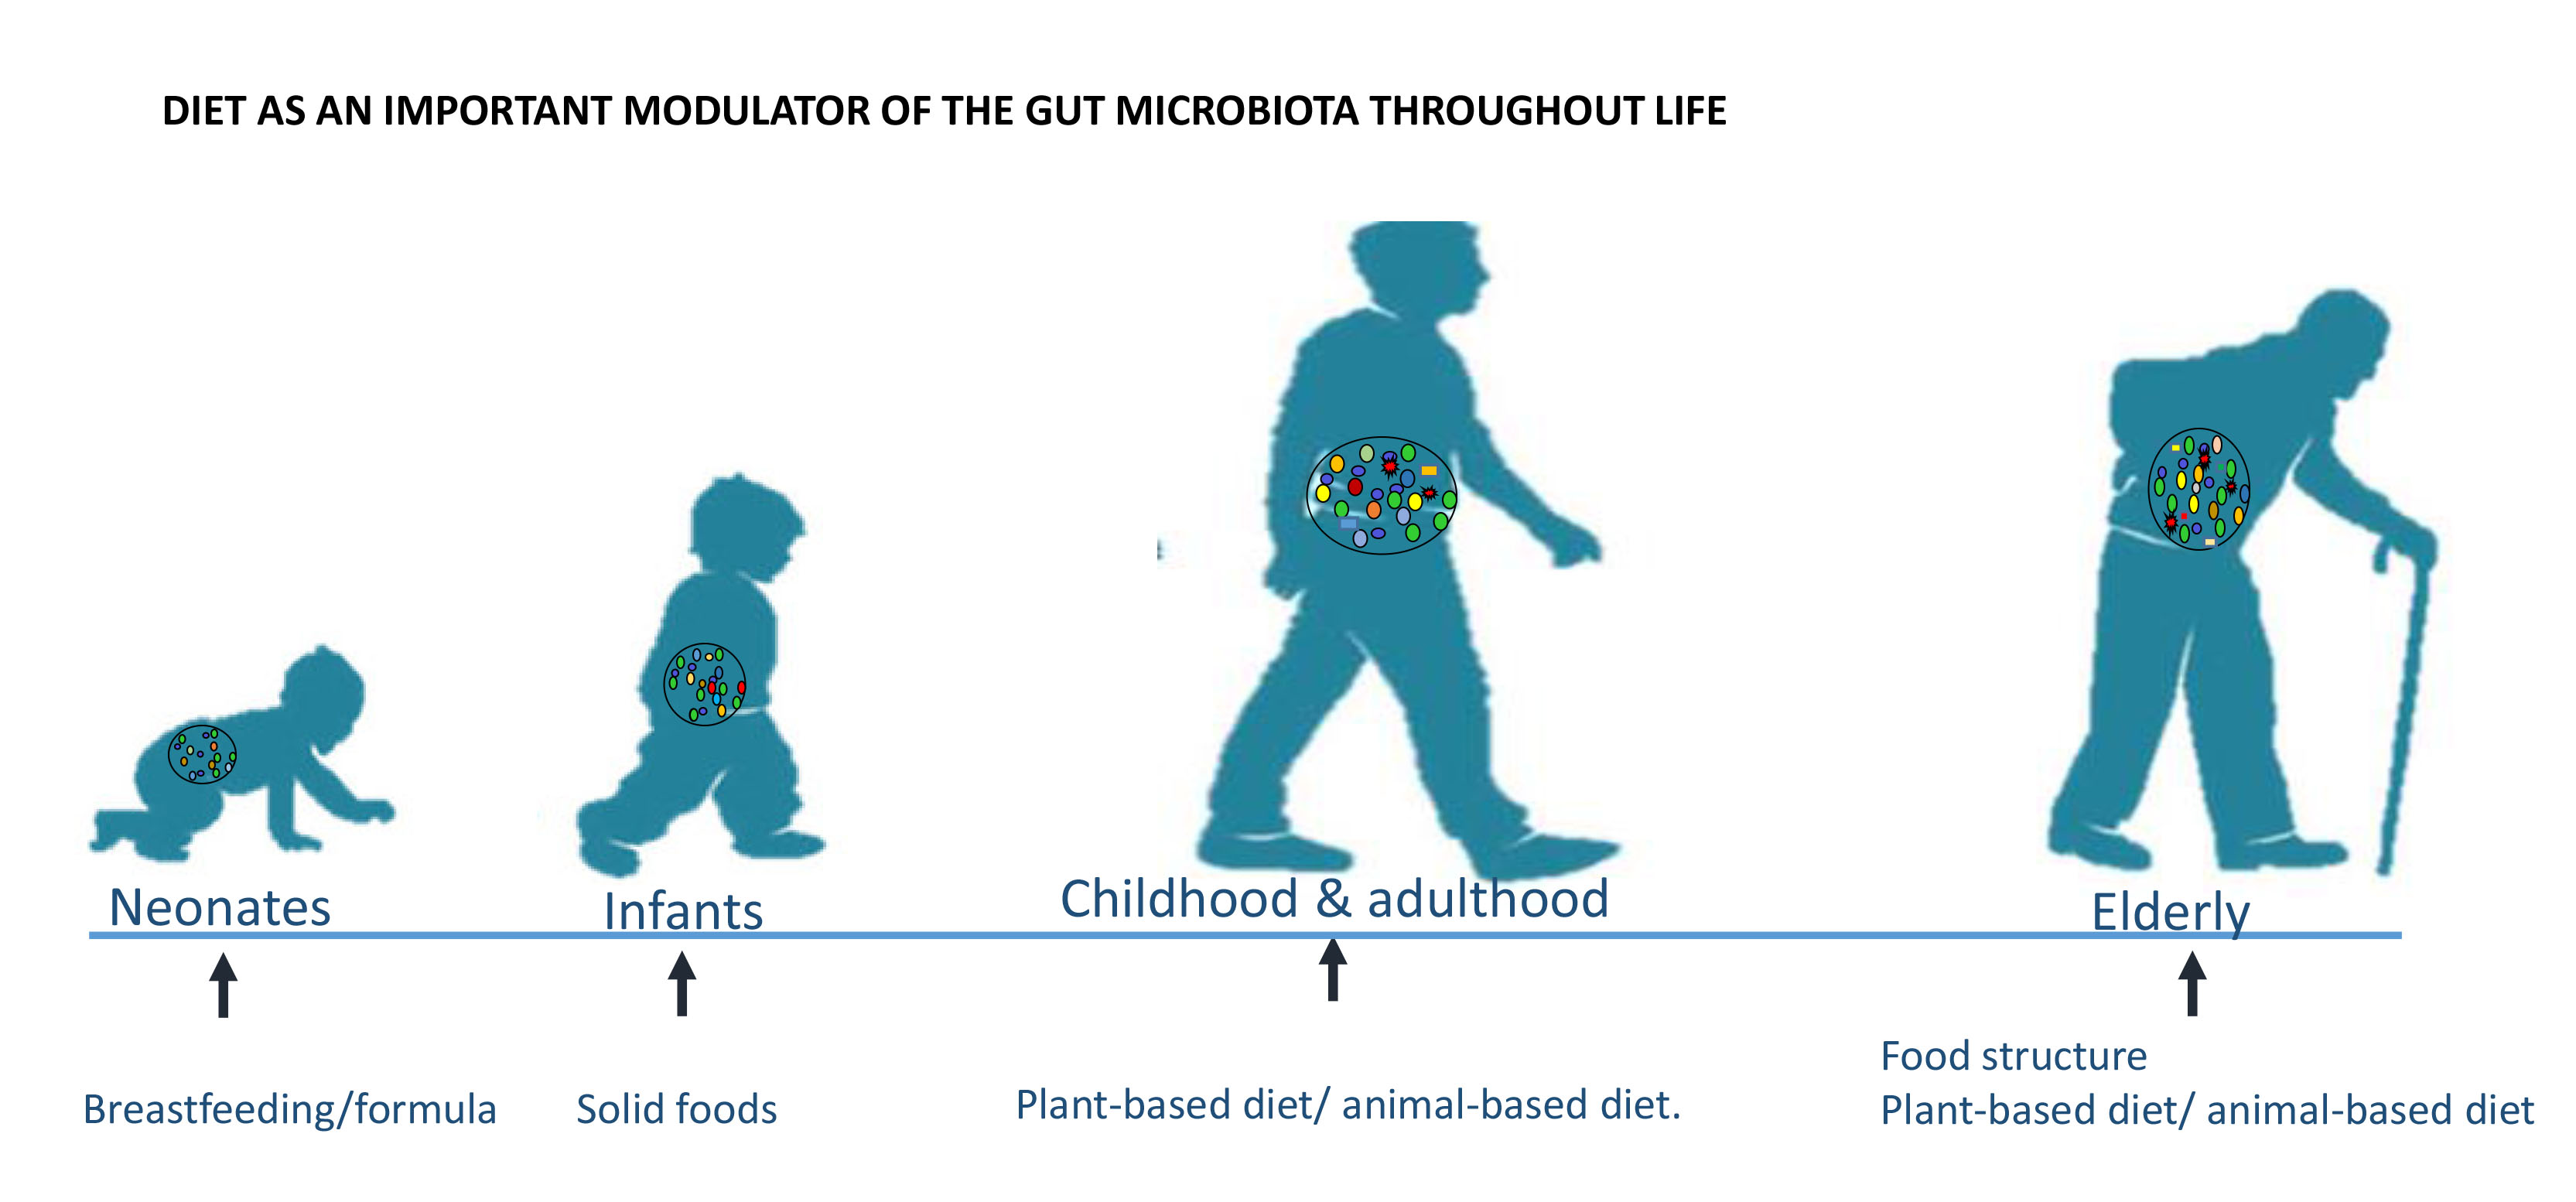 /Assets/images/graphical abstract_pics.jpg,the-effect-of-diet-on-the-fluctuations-of-human-gut-microbiota,gut microbiota; dietary intervention; dietary patterns,gut-microbiota,dietary-intervention,dietary-patterns,